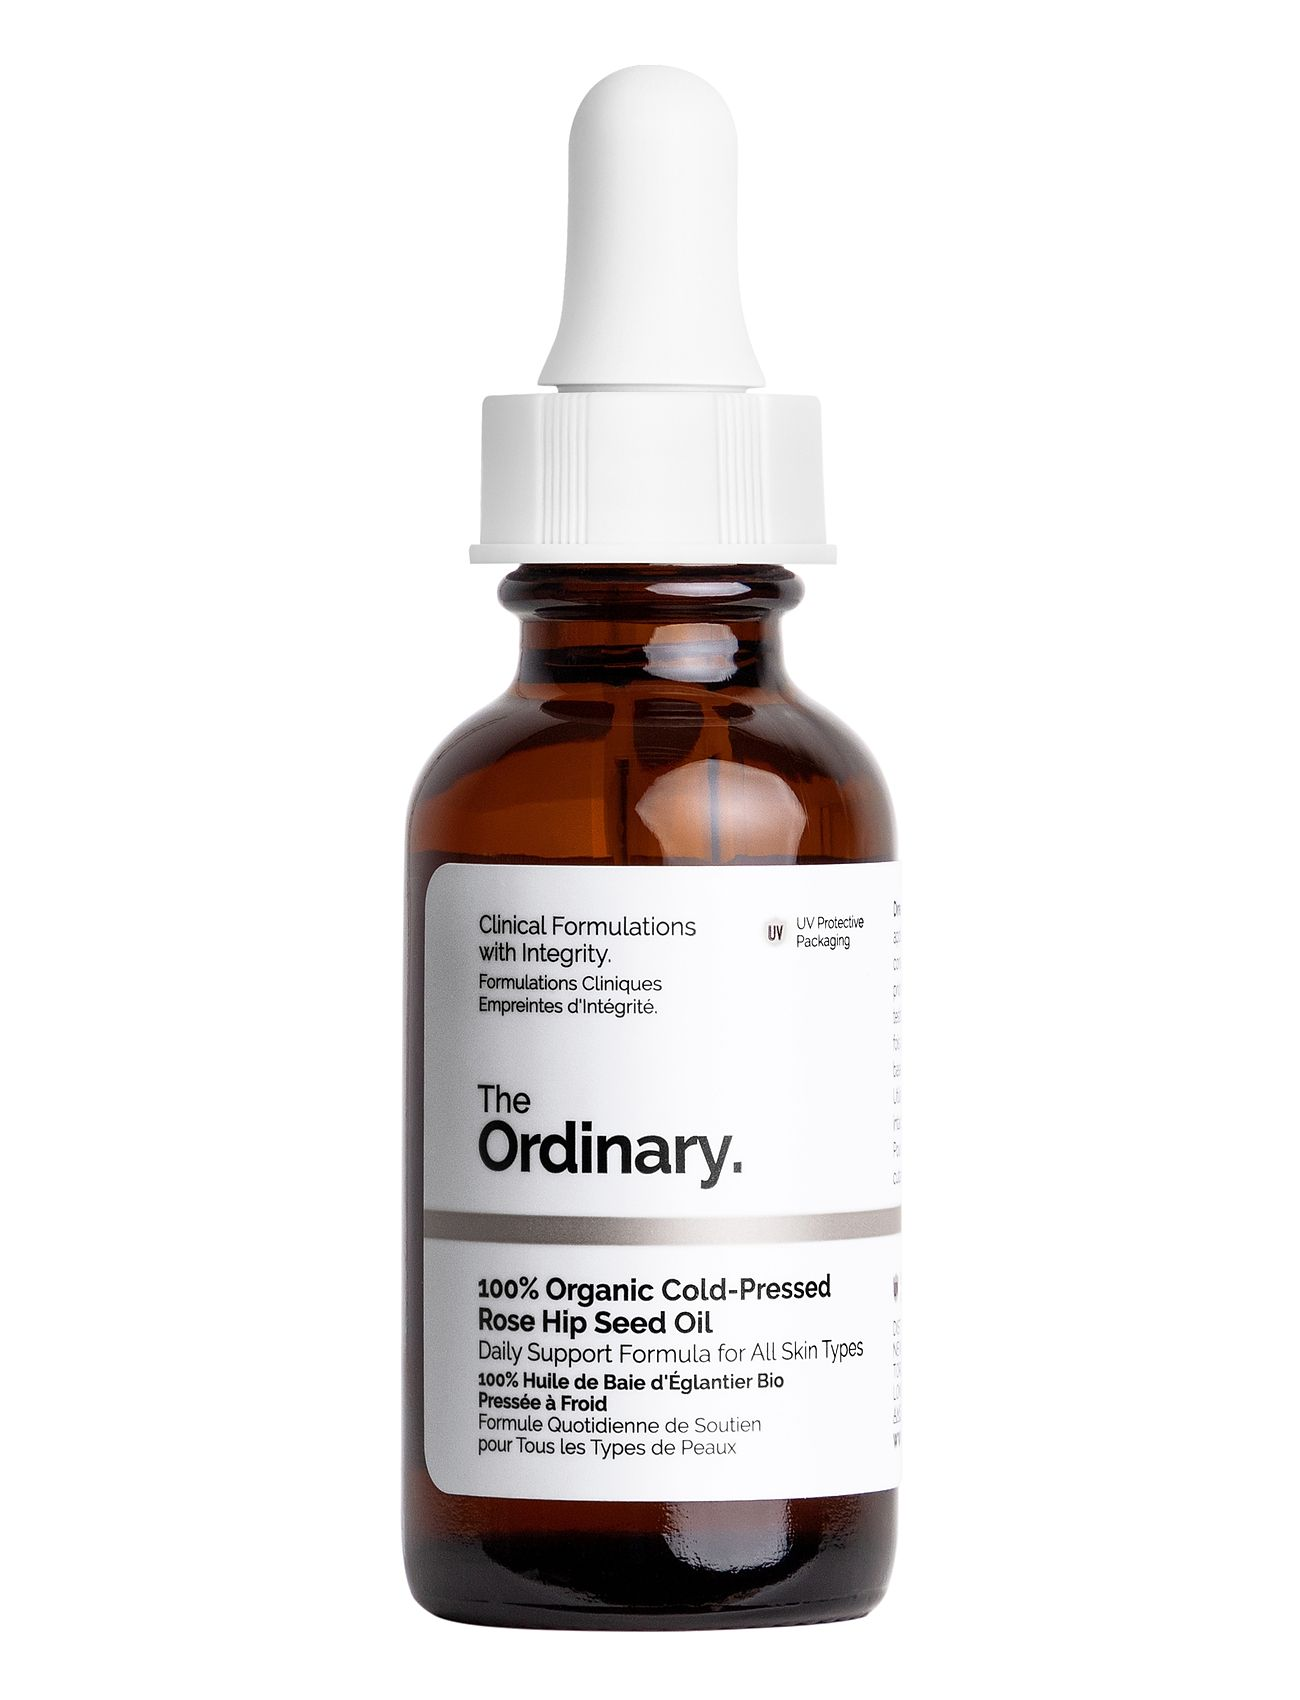 Image of 100% Organic Cold-Pressed Rose Hip Seed Oil (3102802053)